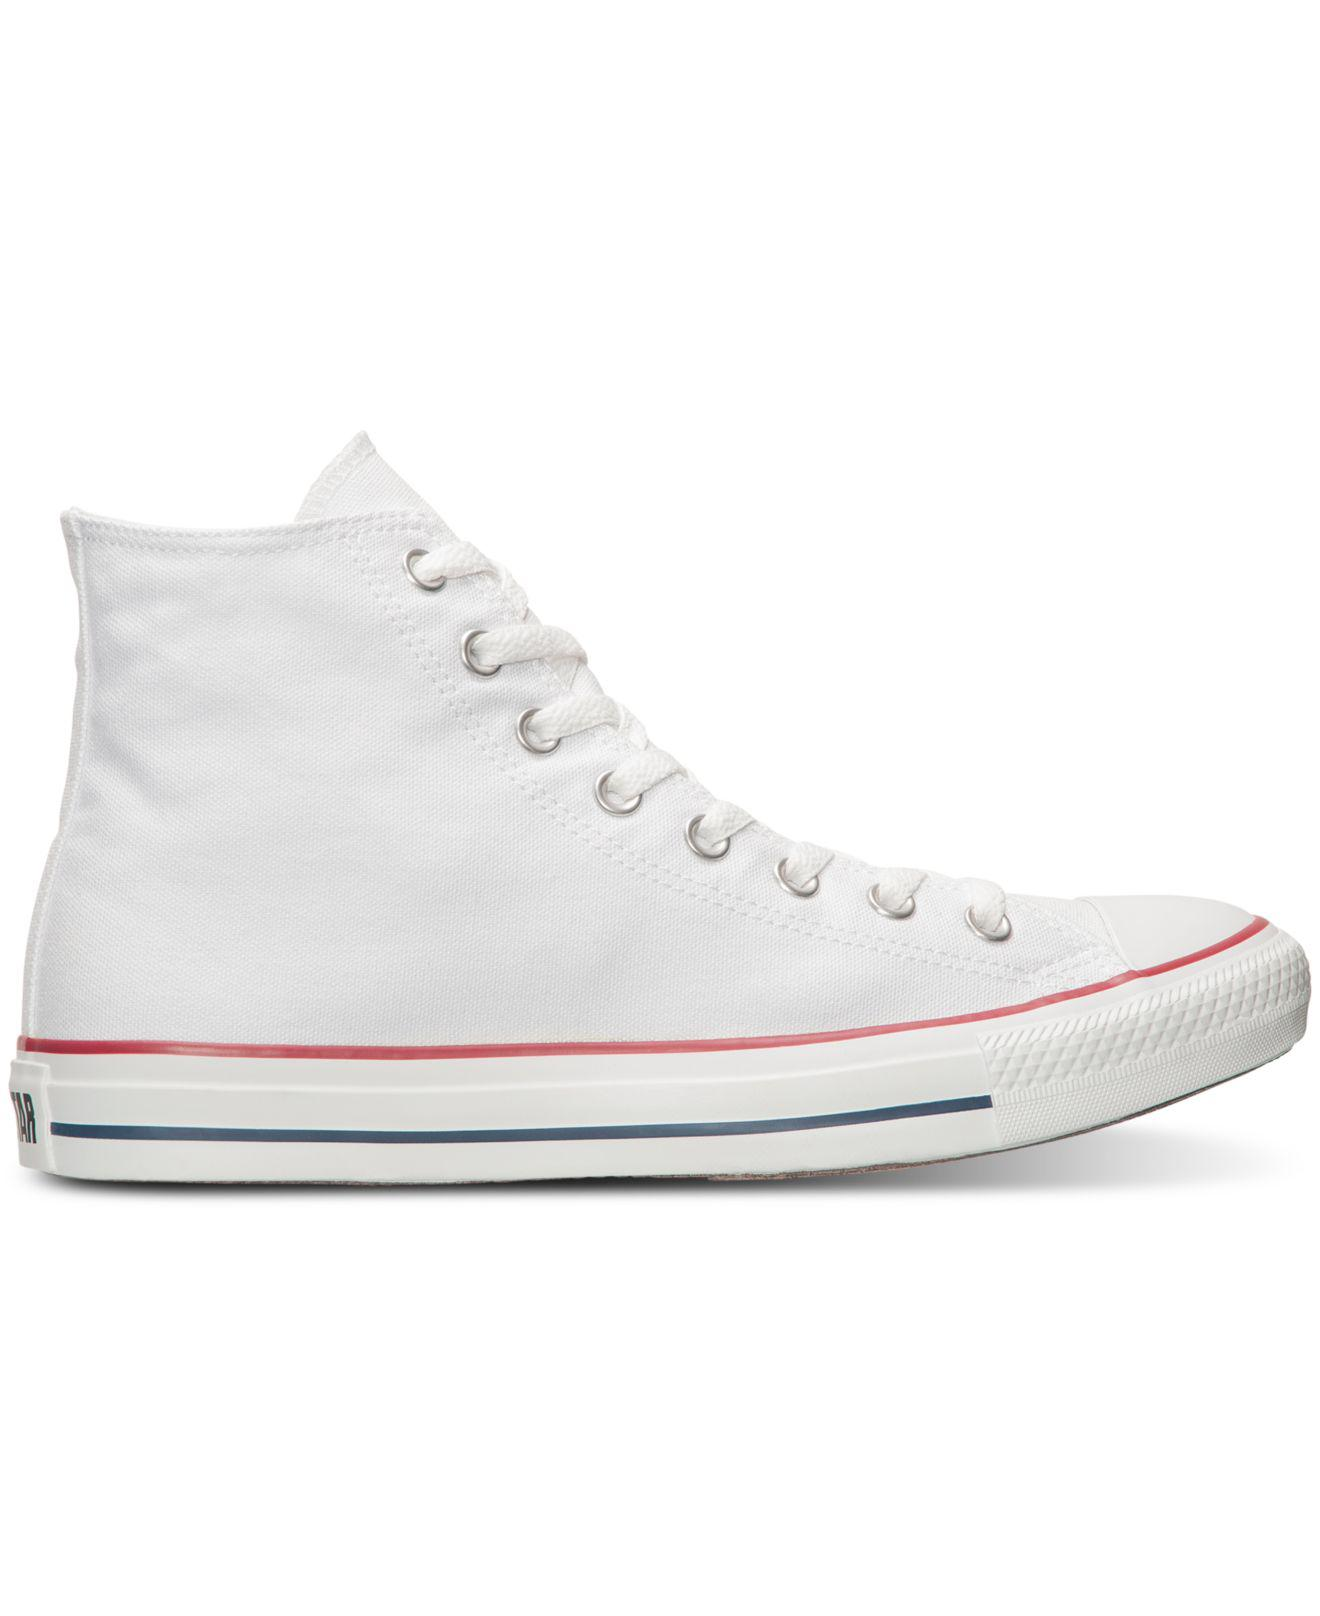 Lyst - Converse Men s Chuck Taylor All Star Canvas High Top Sneakers in  White for Men - Save 32% 57fac9d25